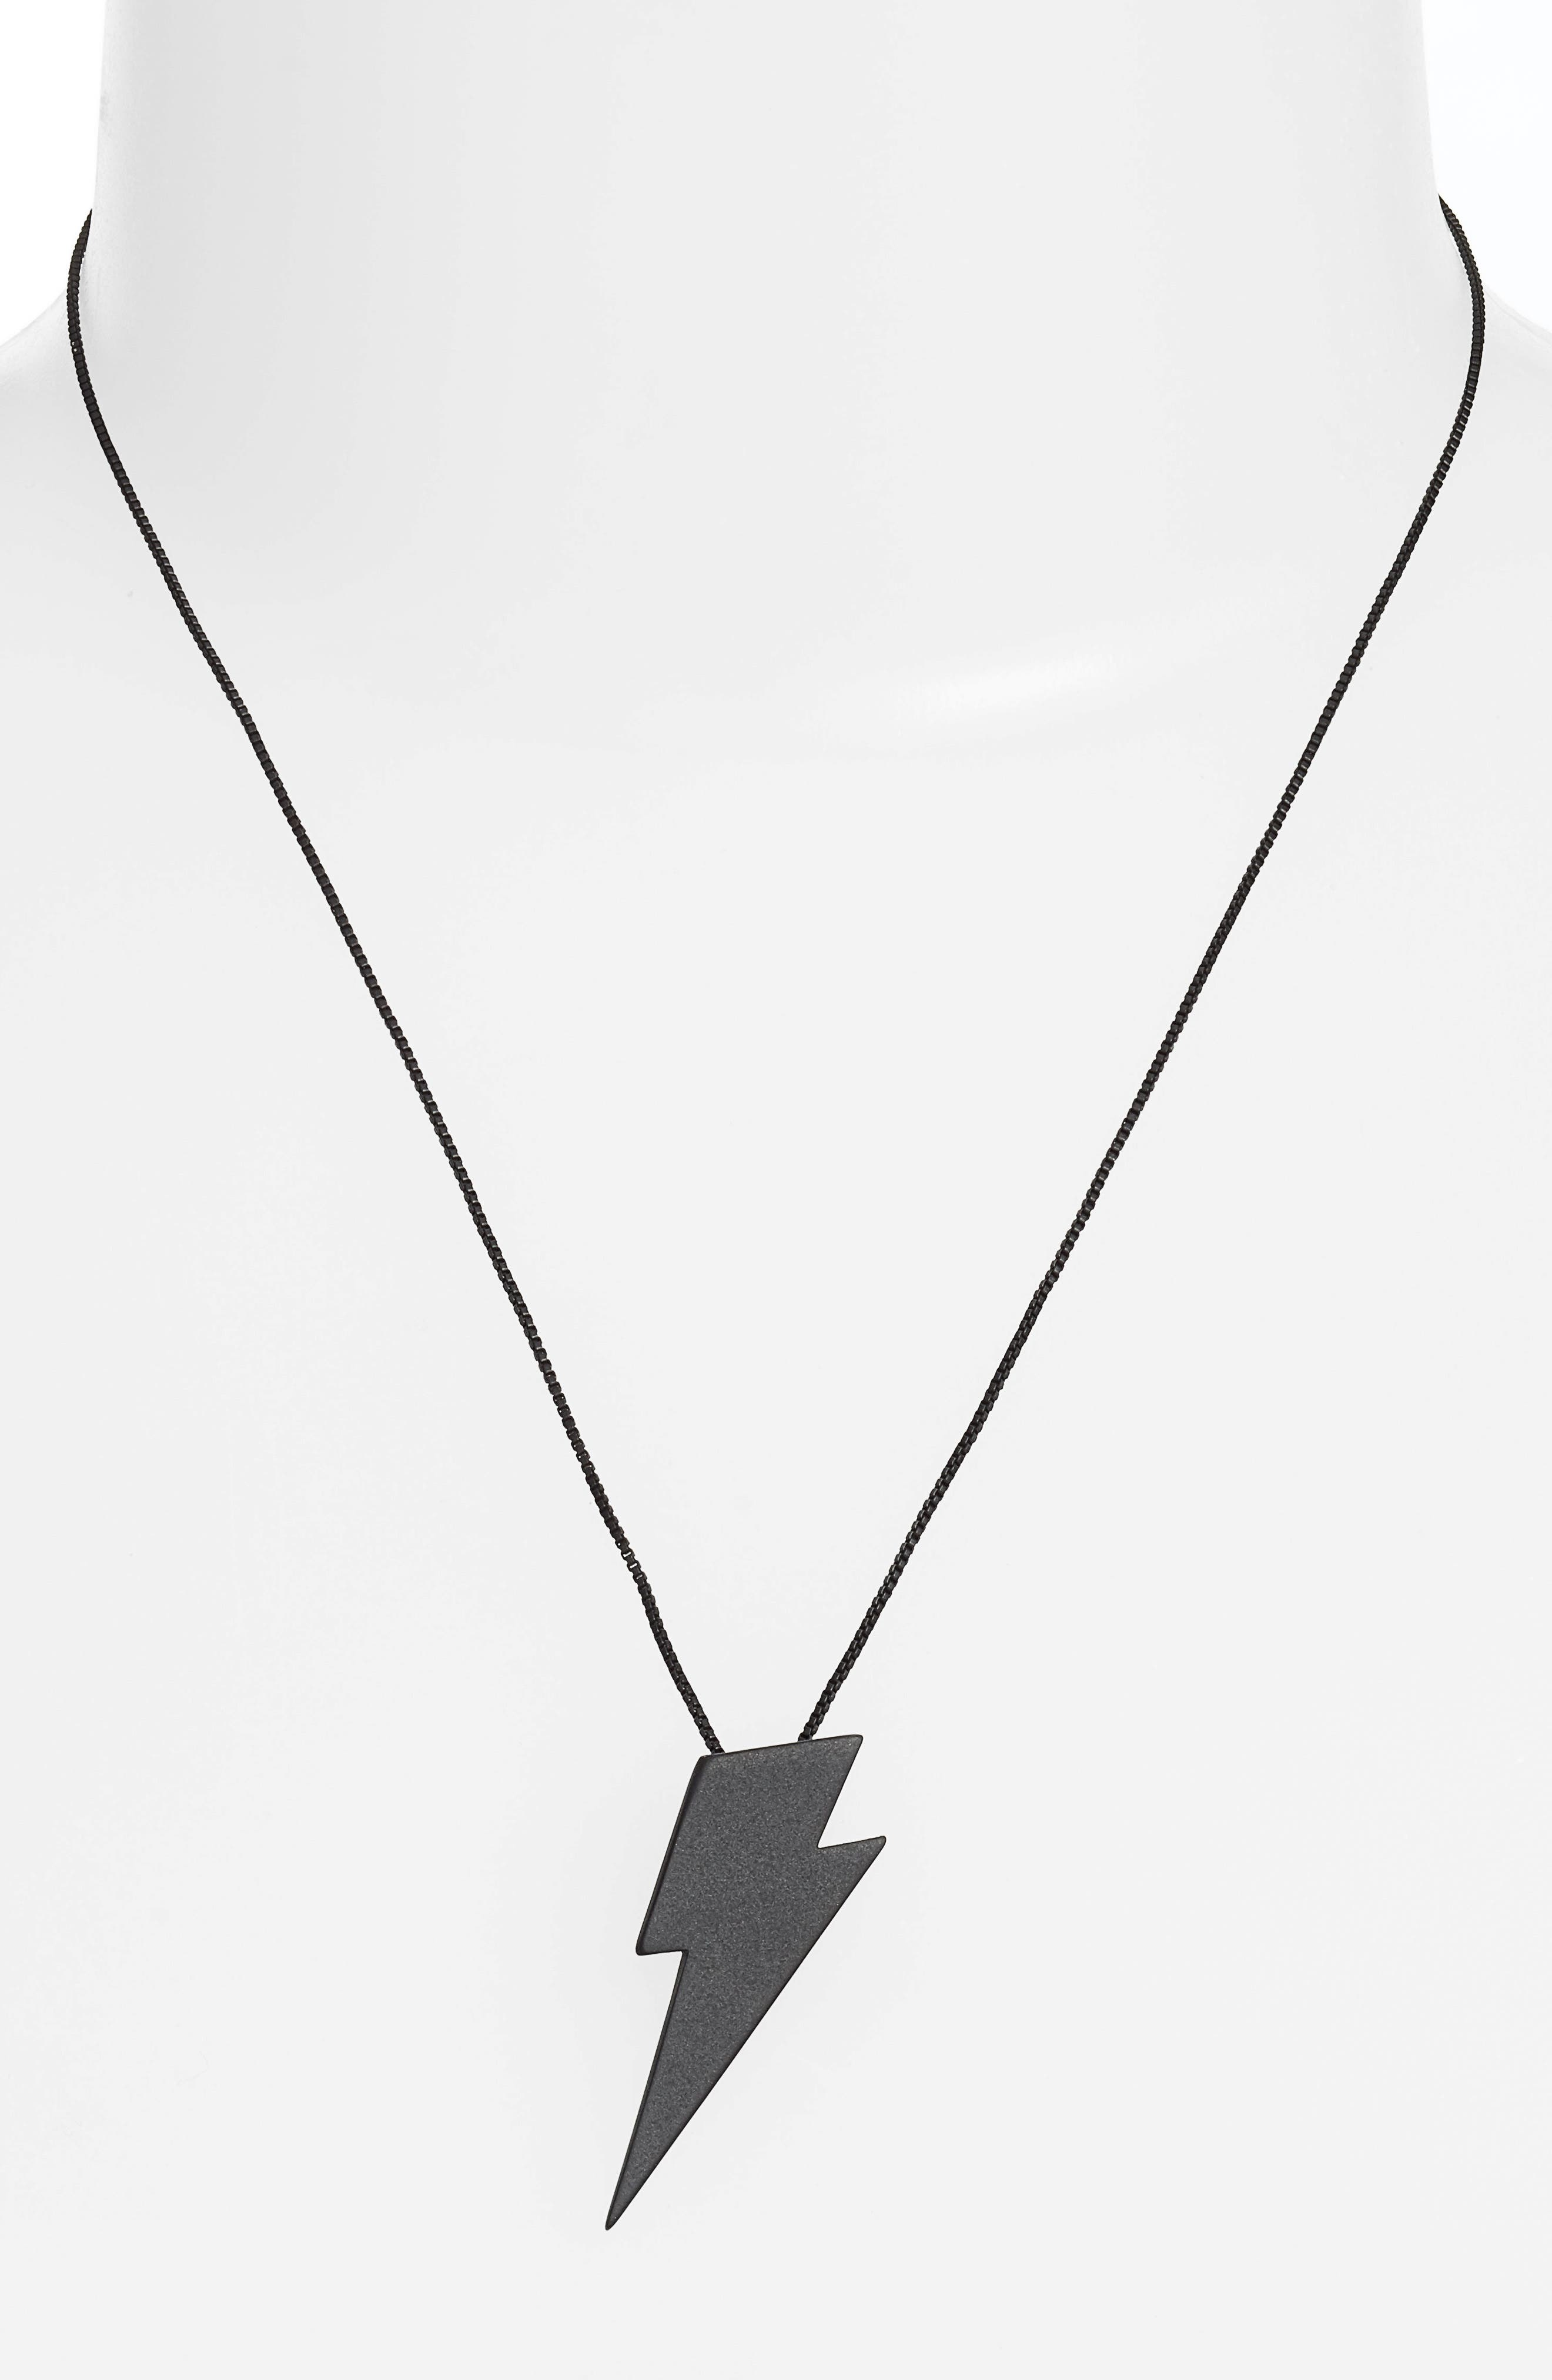 Thunderstruck Pendant Necklace,                             Alternate thumbnail 2, color,                             001